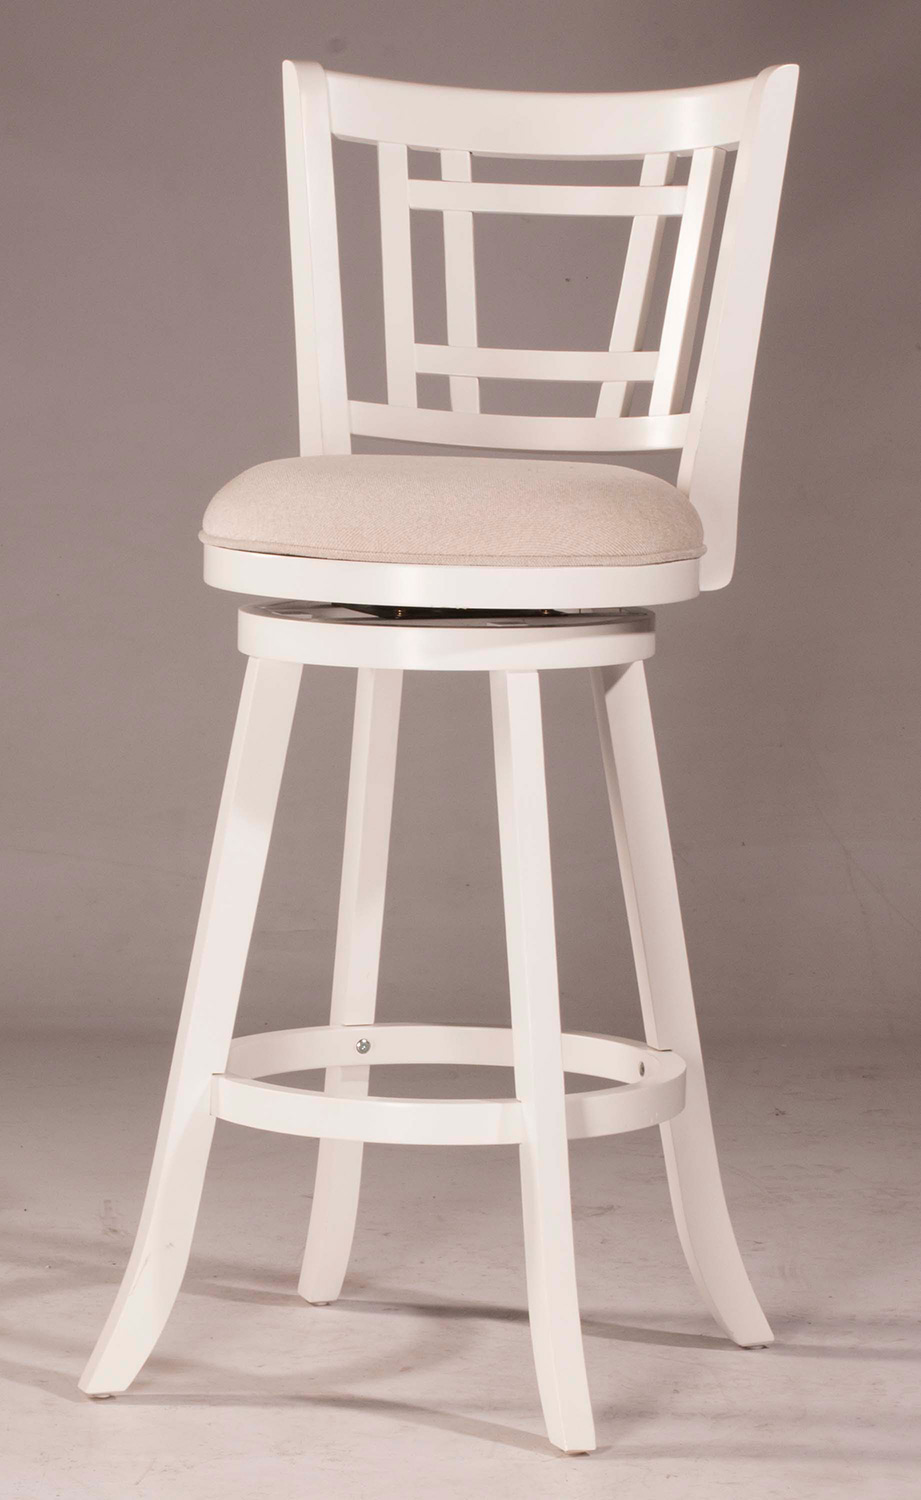 Hillsdale Fairfox Swivel Counter Stool - White - Ecru Fabric